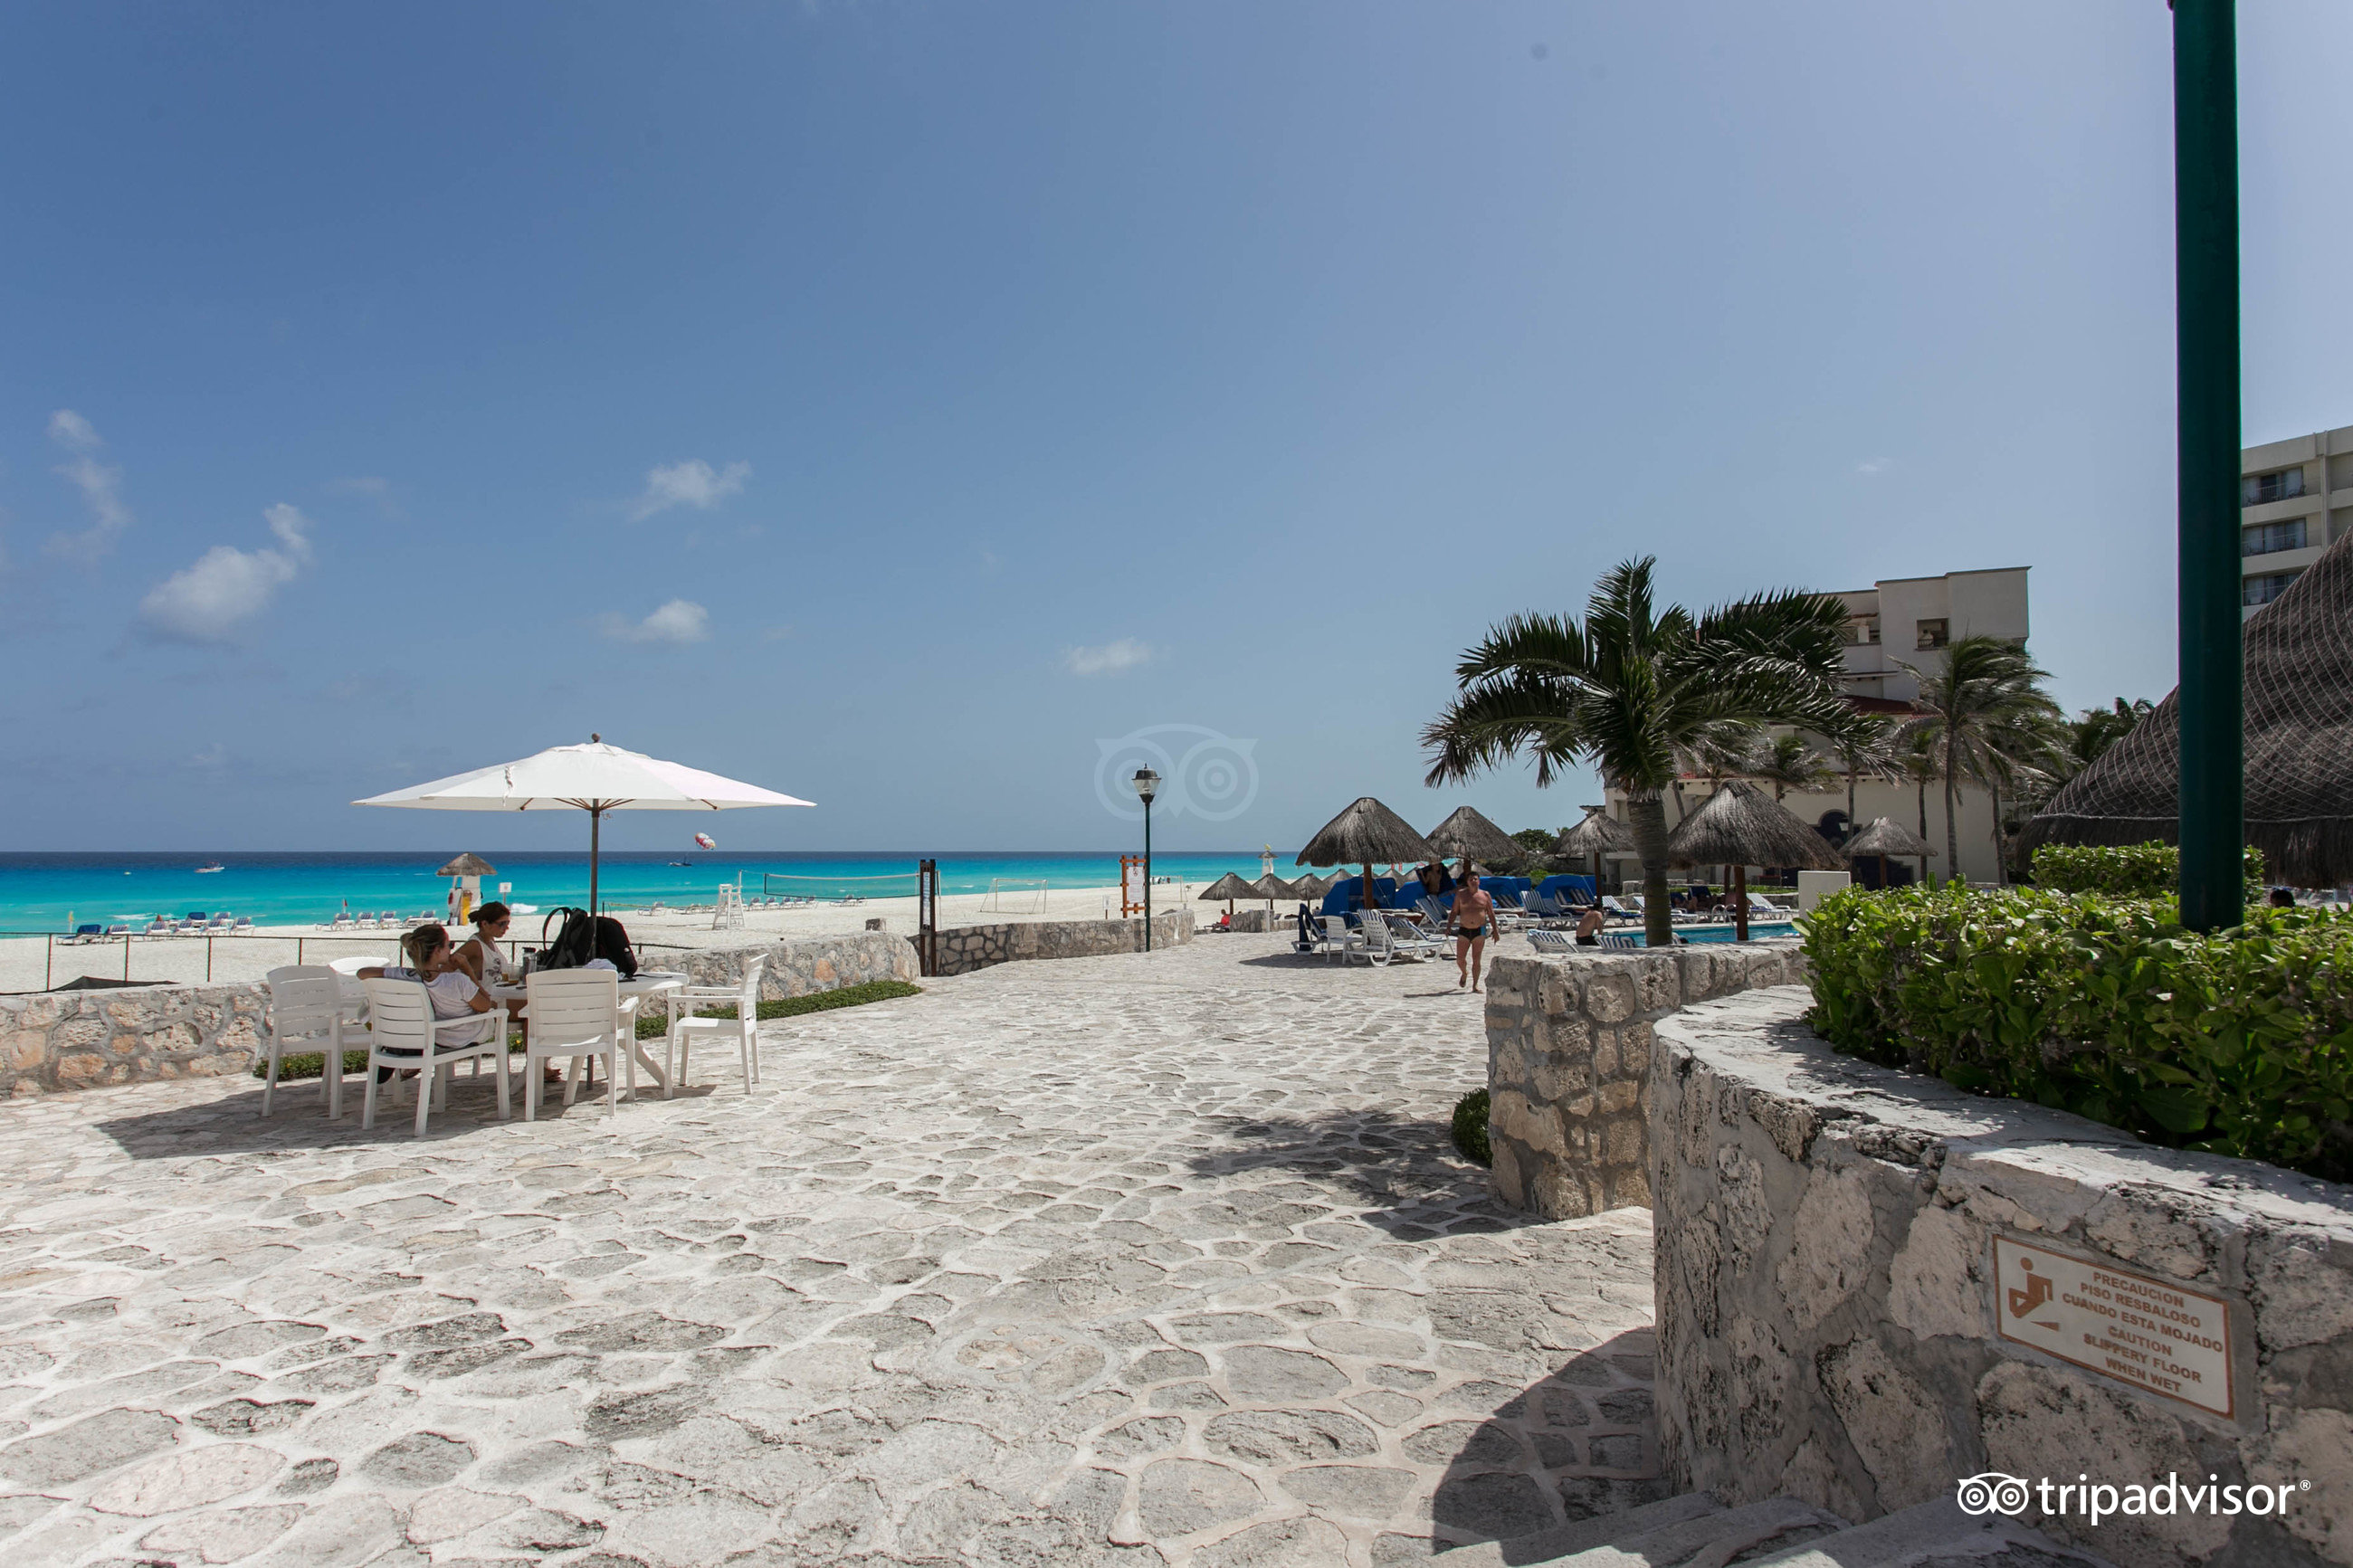 Cancun an all suites resort 2017 review family vacation critic - Cancun Caribe Park Royal Grand Hotel 2018 Review Family Vacation Critic